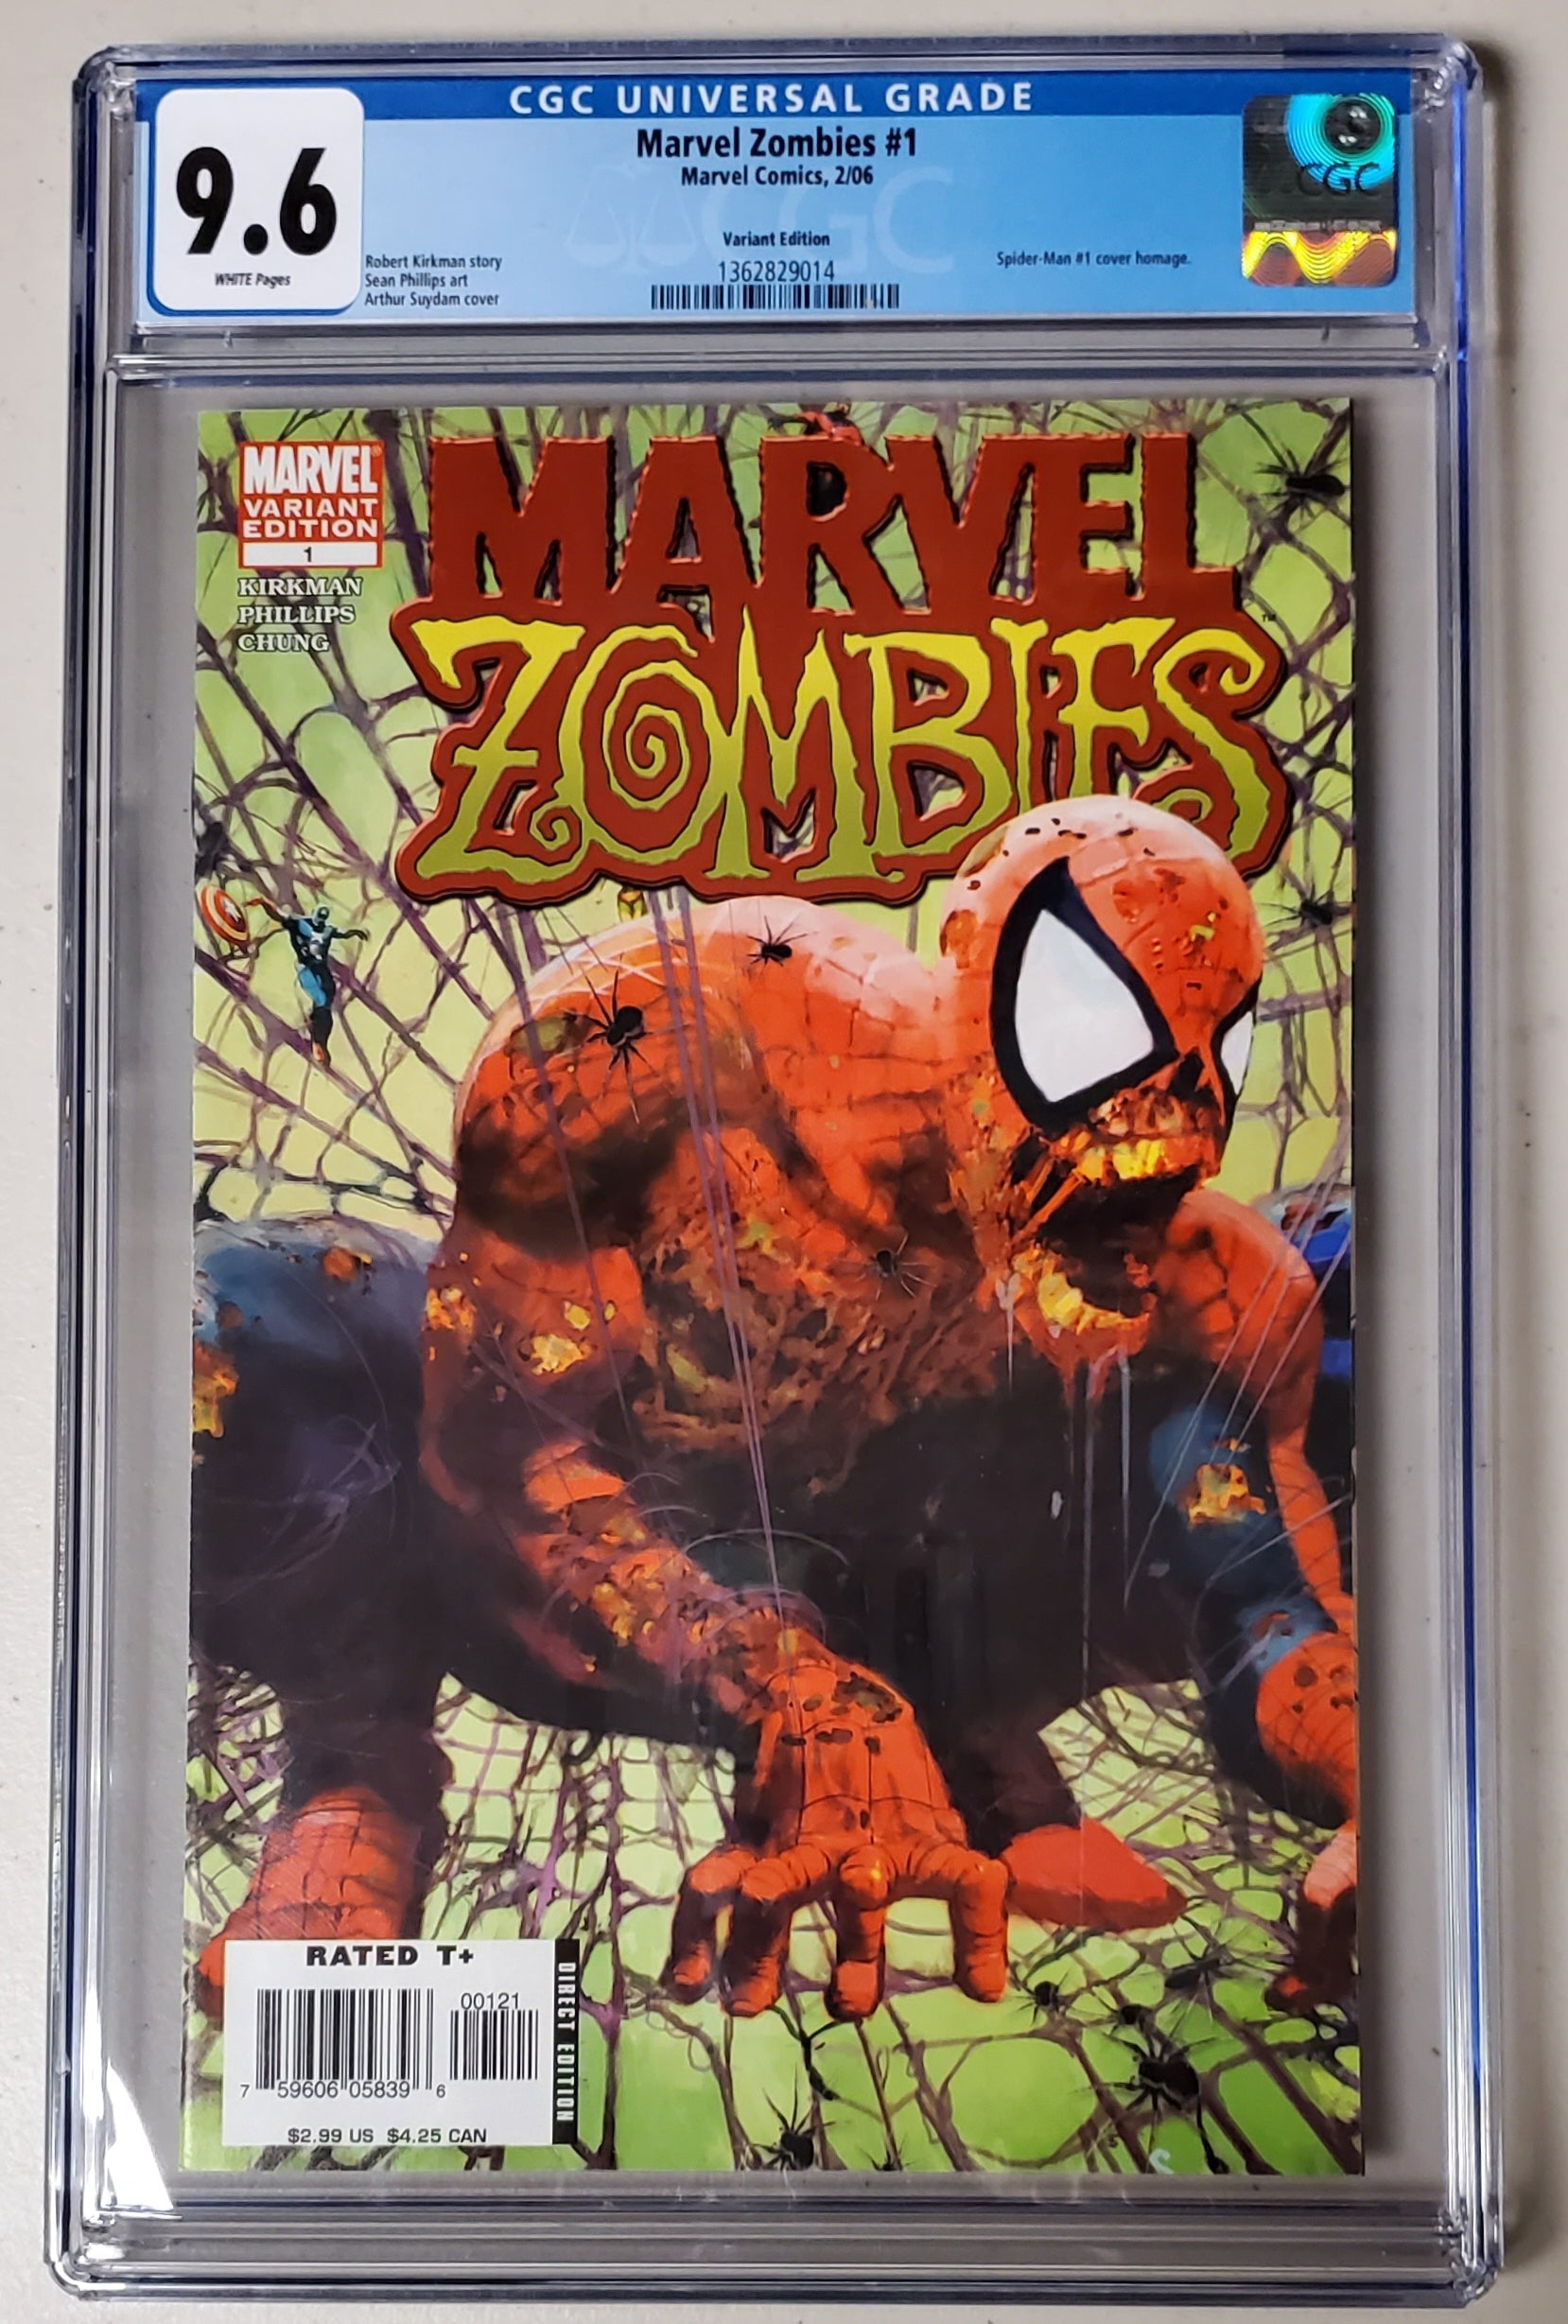 9.6 CGC Marvel Zombies #1 Variant (Spider-Man #1 Homage) 2006